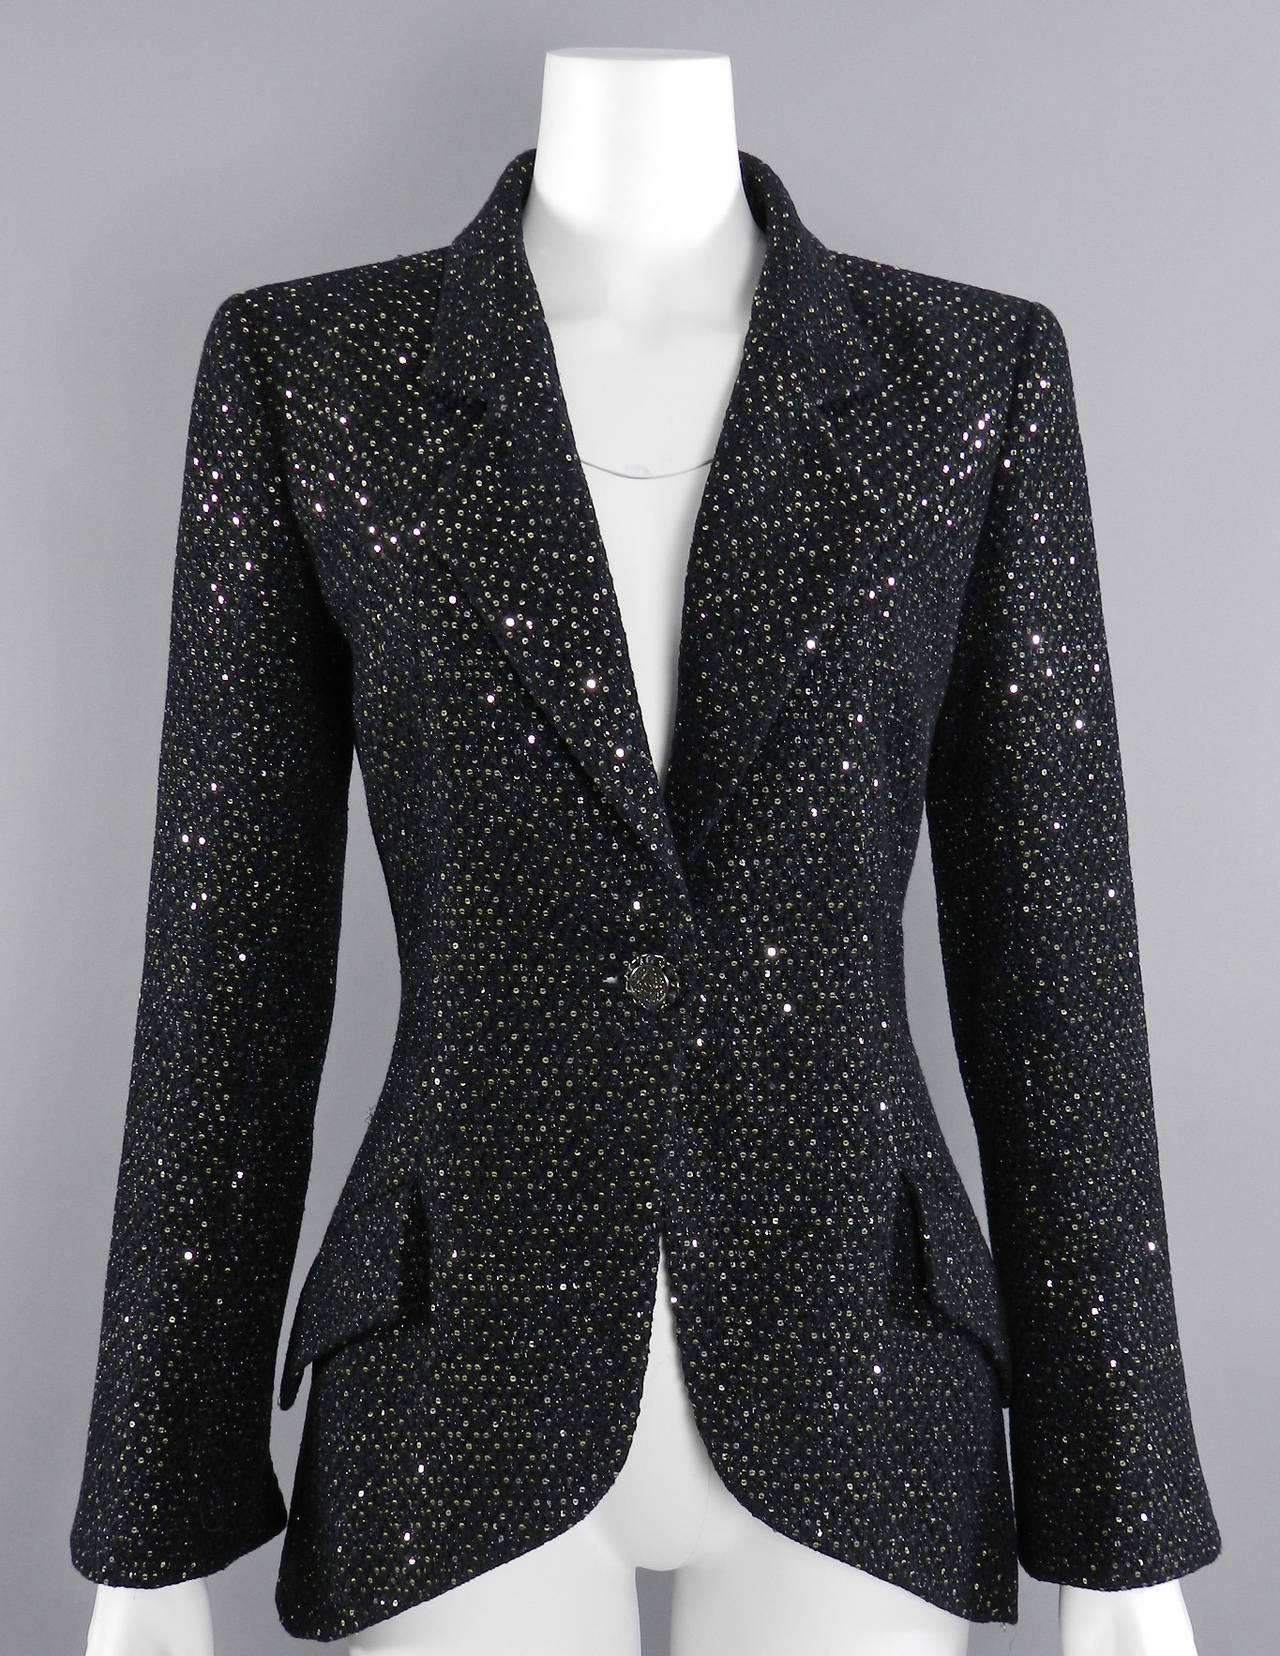 Chanel 11C Black Ad Campaign / Runway Jacket with Silver Sequins 9